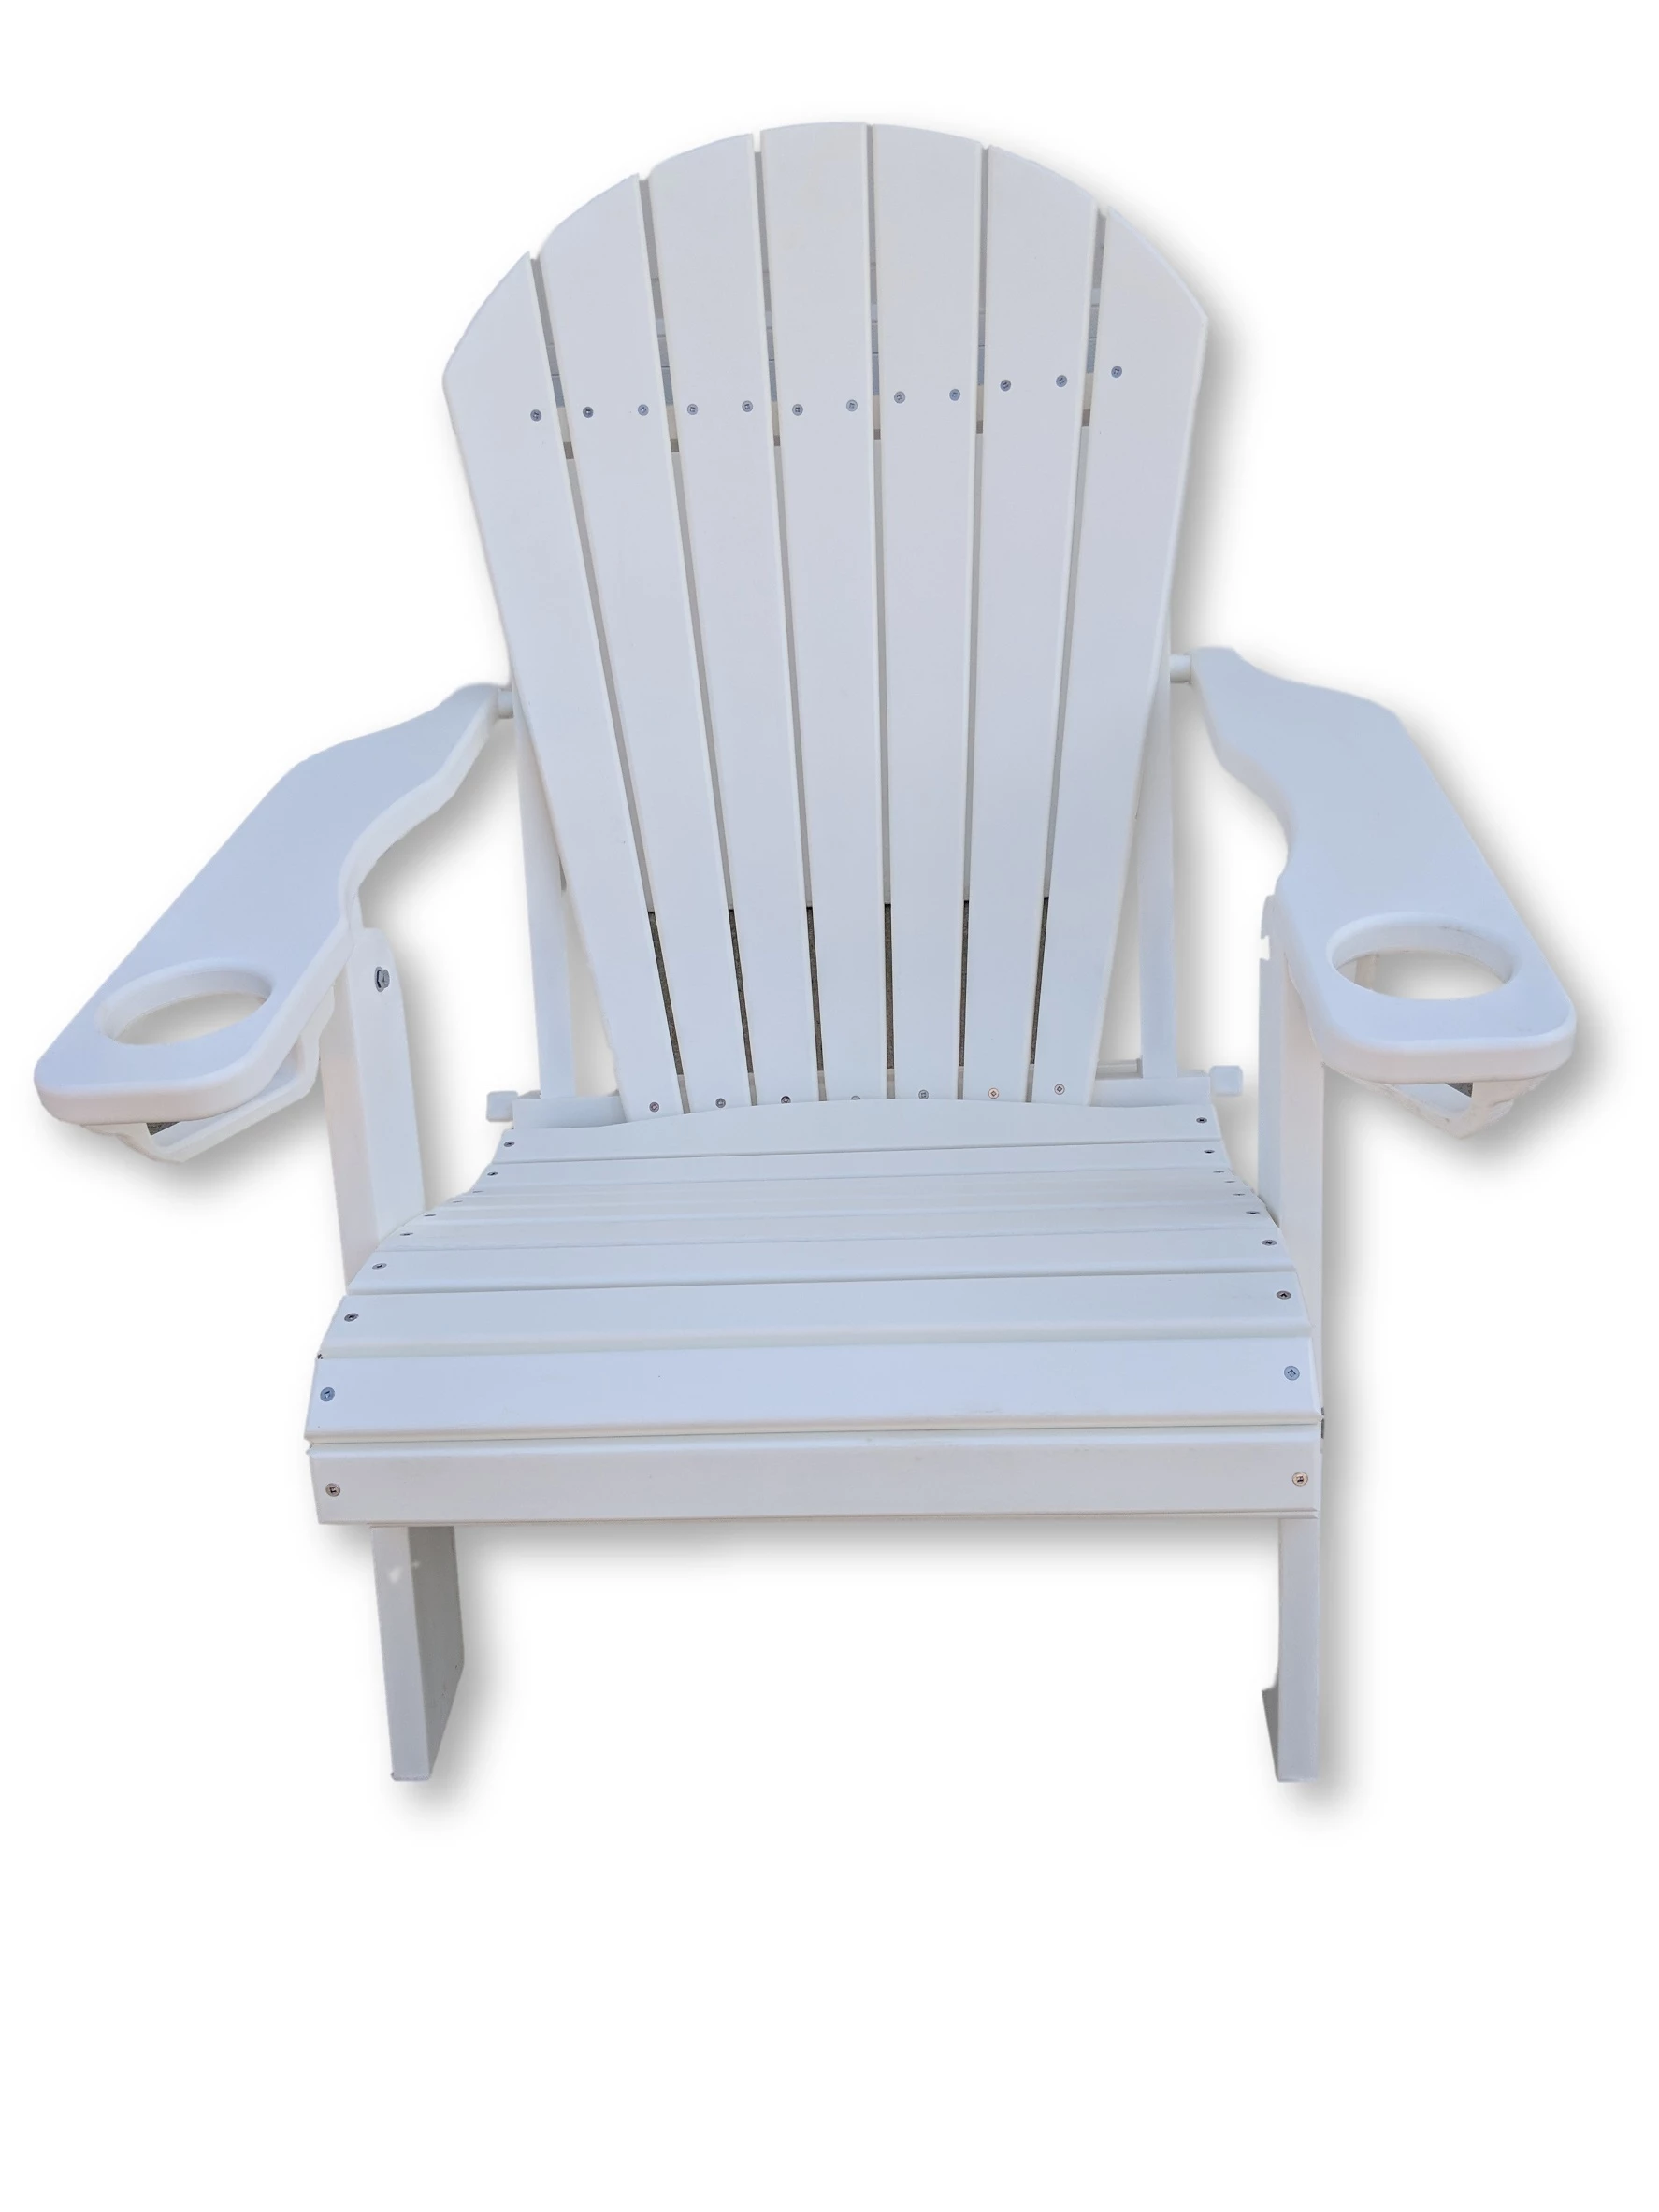 White Folding Adirondack Chair with  Cup Holders